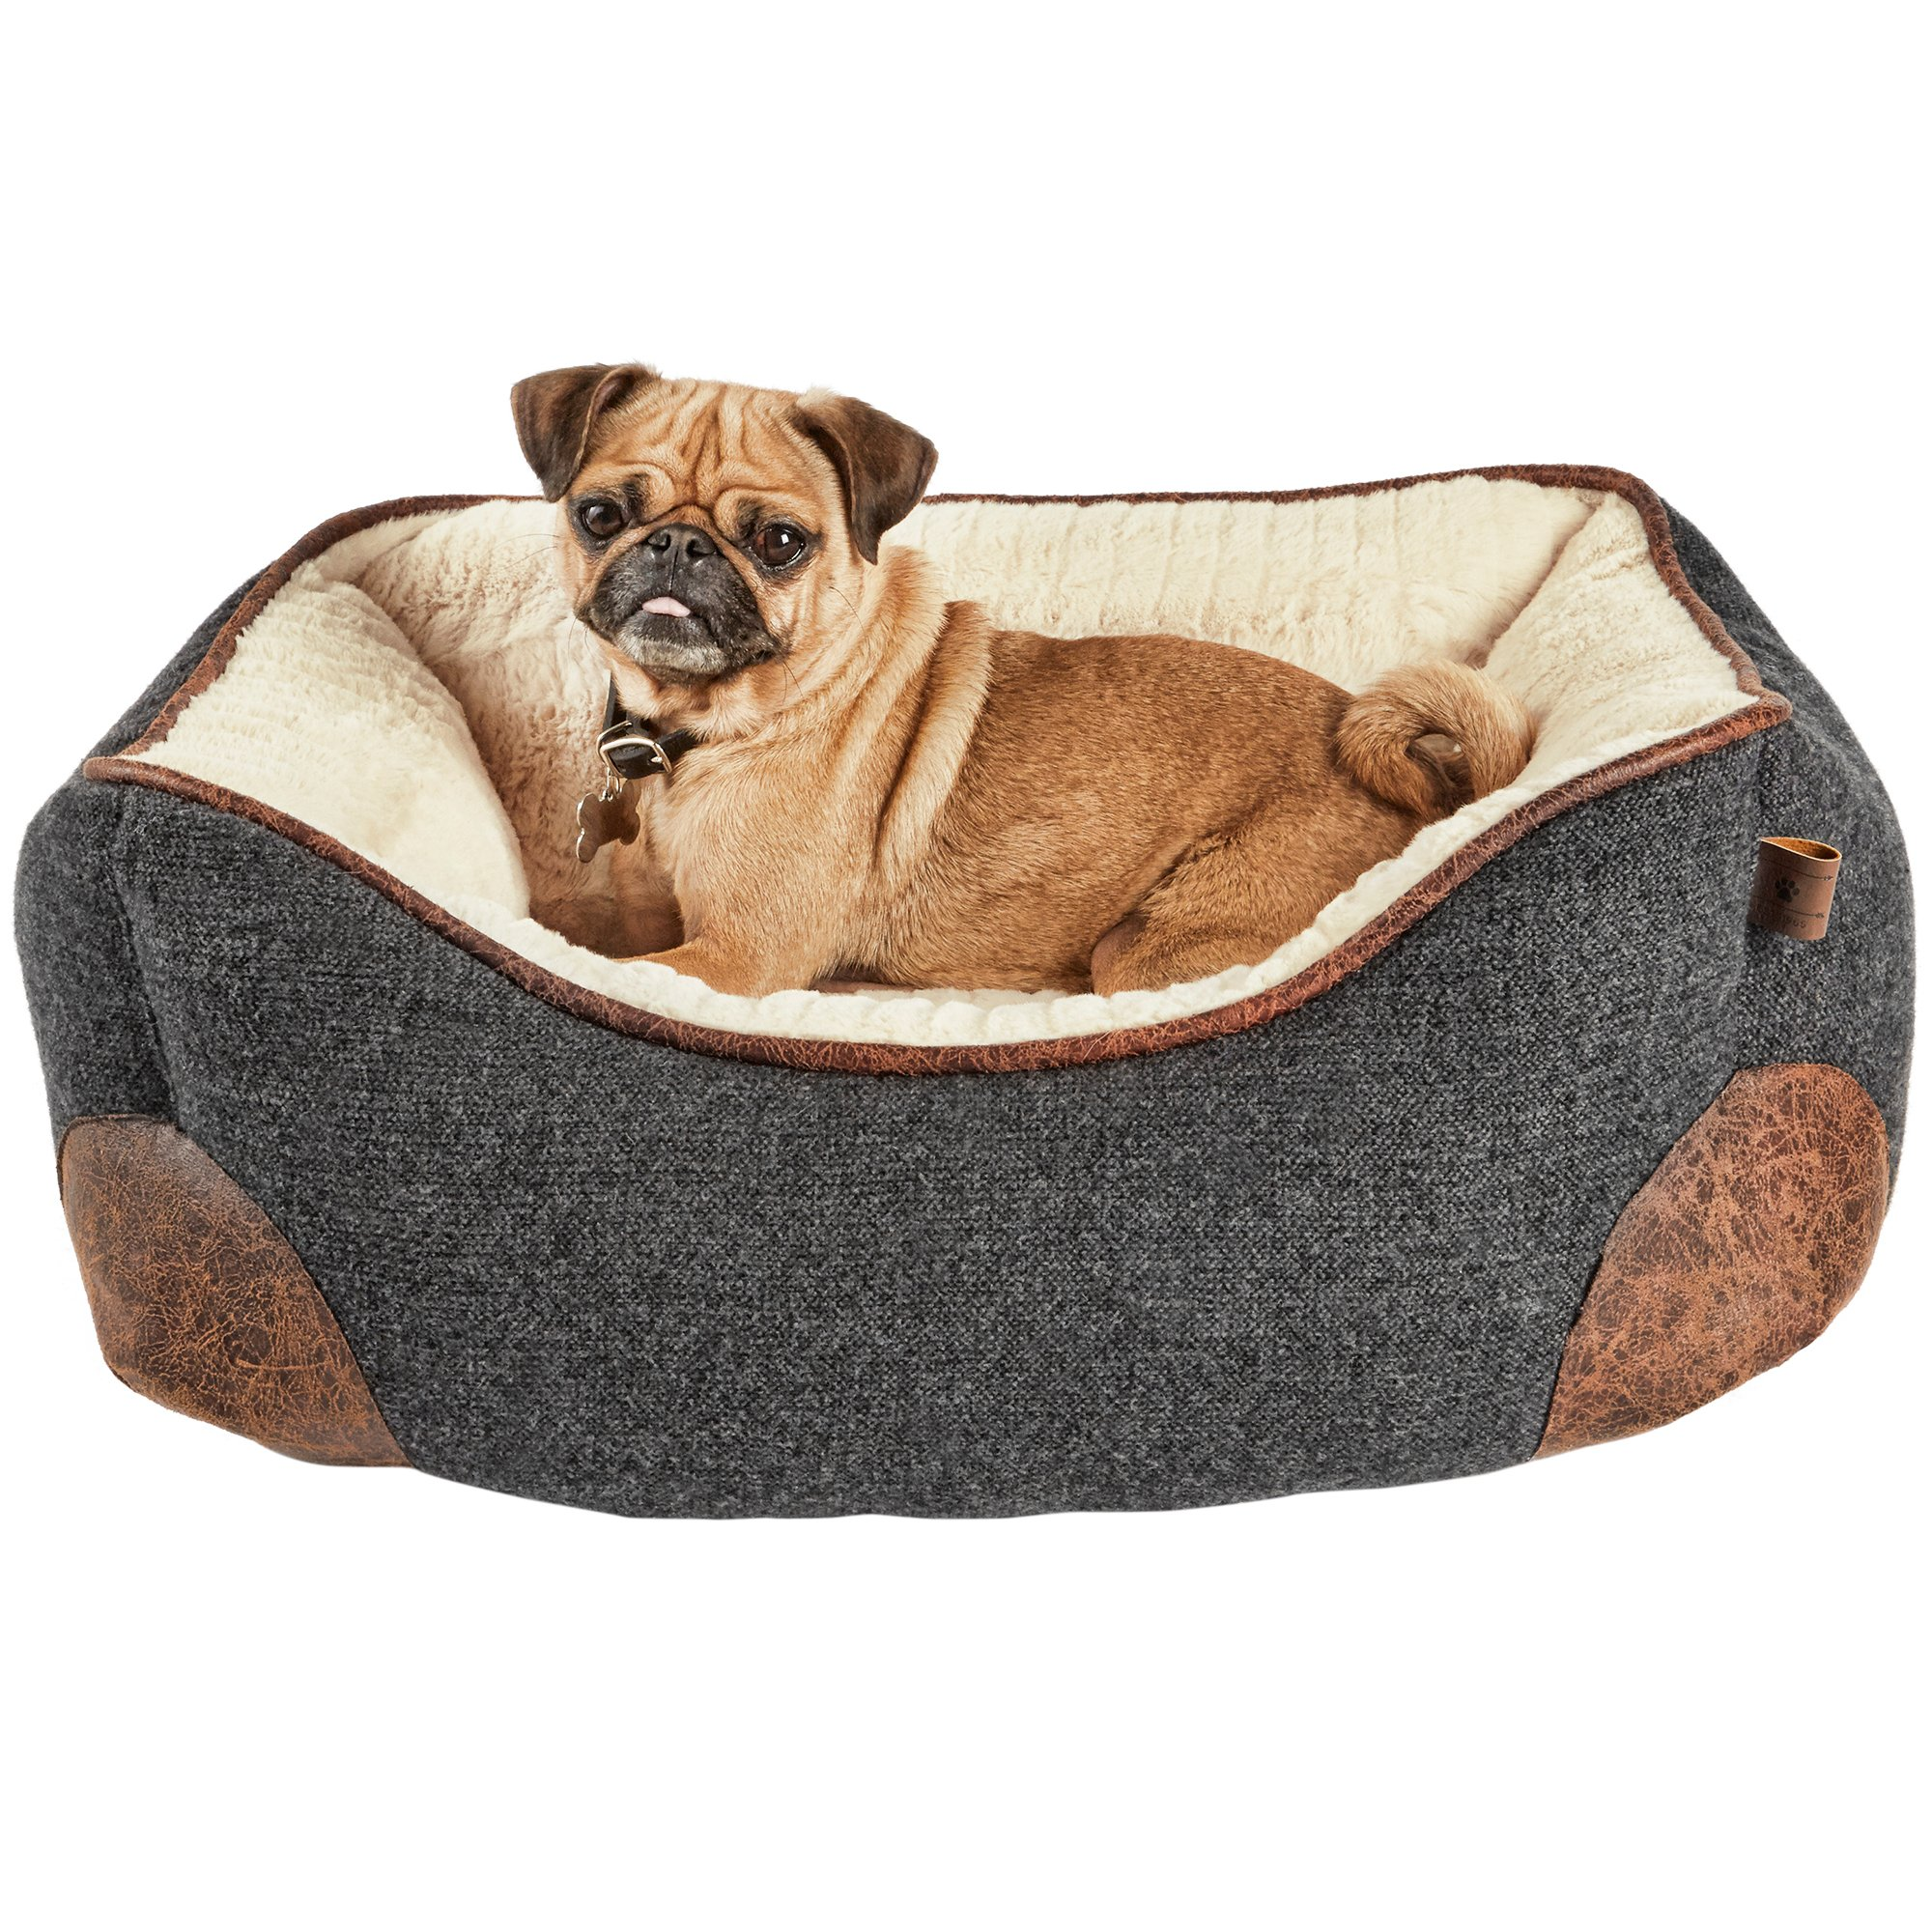 silver beds pet bed best for choose microvelvet how dog snuggery lifestyle dogs to large